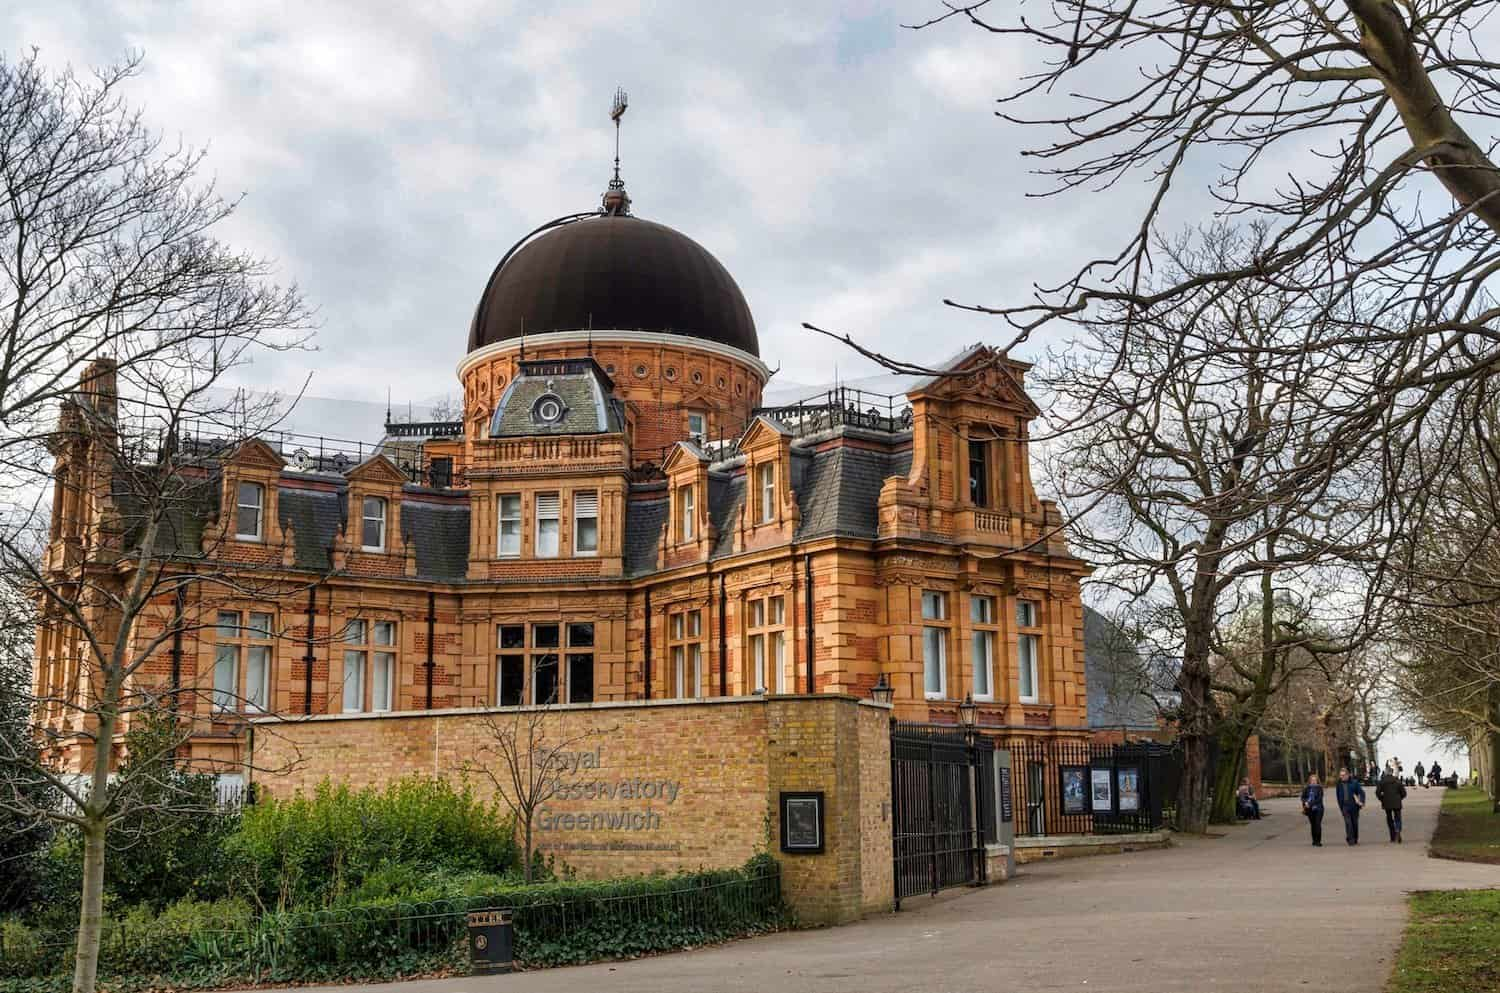 Royal Greenwich Observatory - Marc Czerlinsky via Flickr